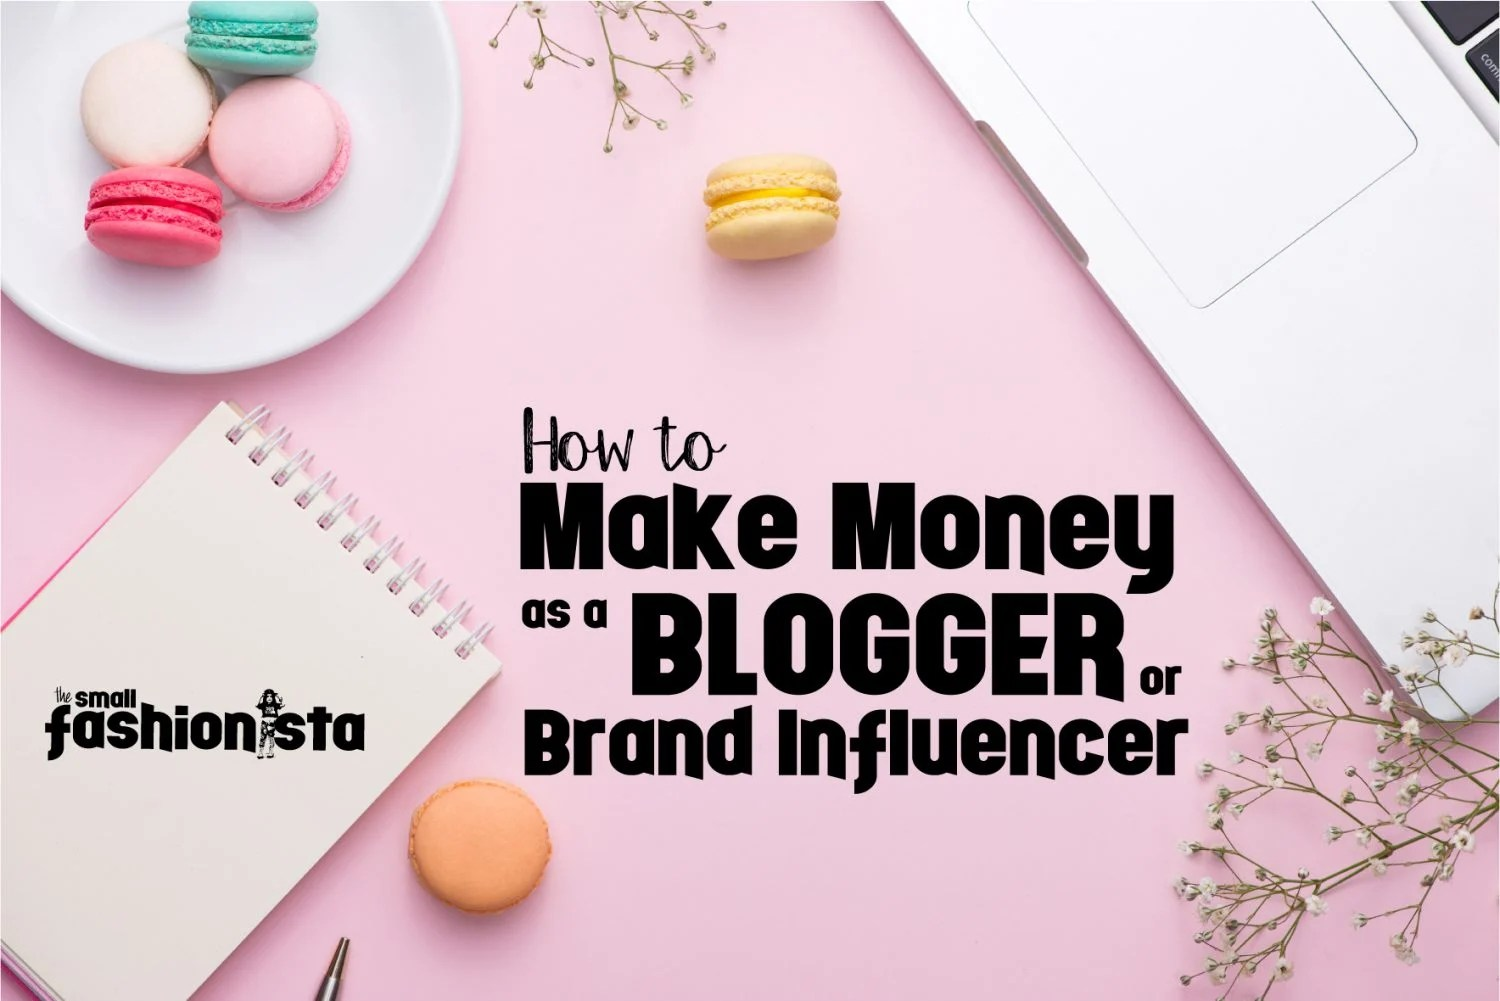 How to Make Money as a Blogger and Brand Influencer